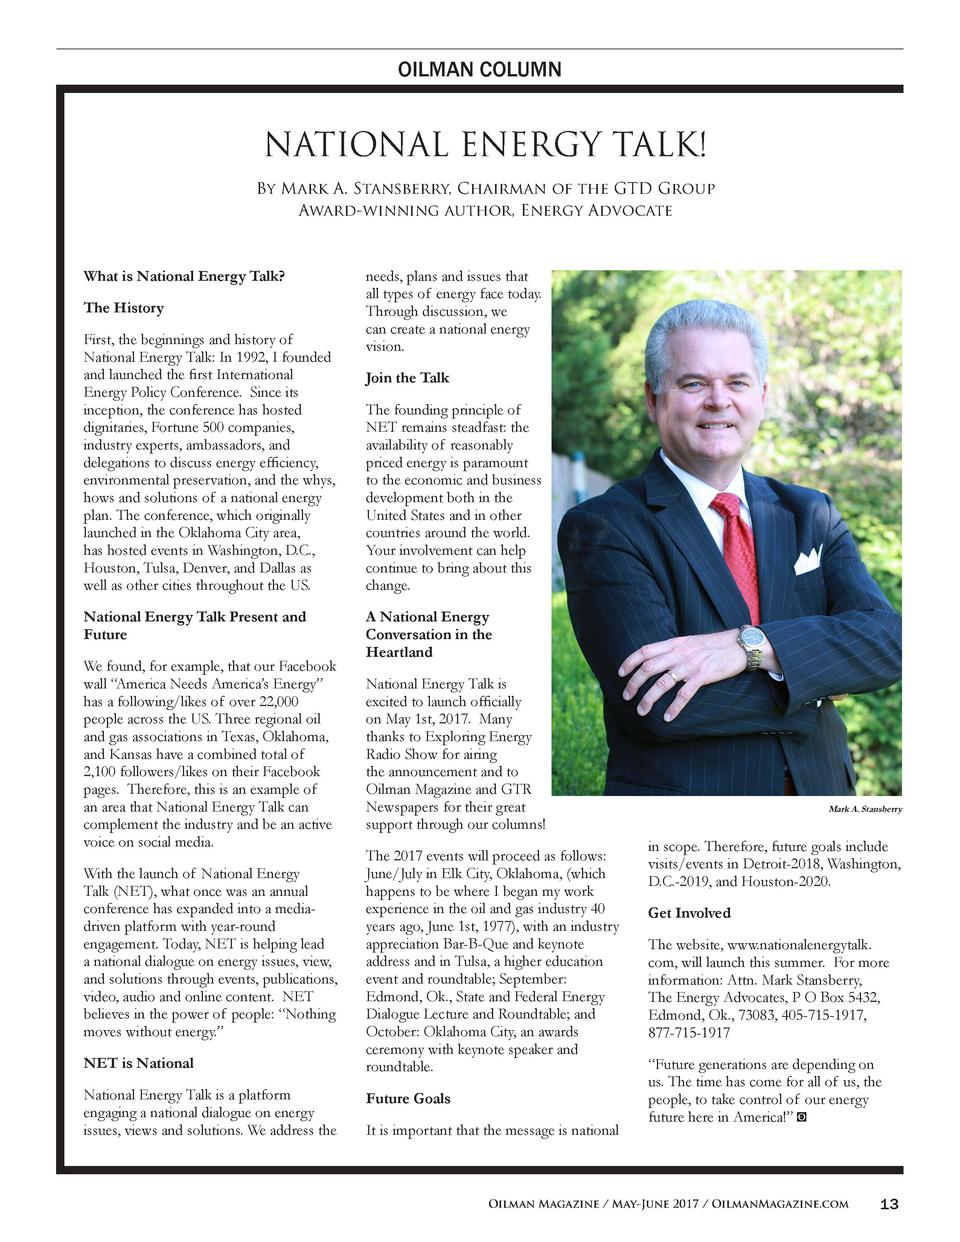 OILMAN COLUMN  NATIONAL ENERGY TALK  By Mark A. Stansberry, Chairman of the GTD Group Award-winning author, Energy Advocat...